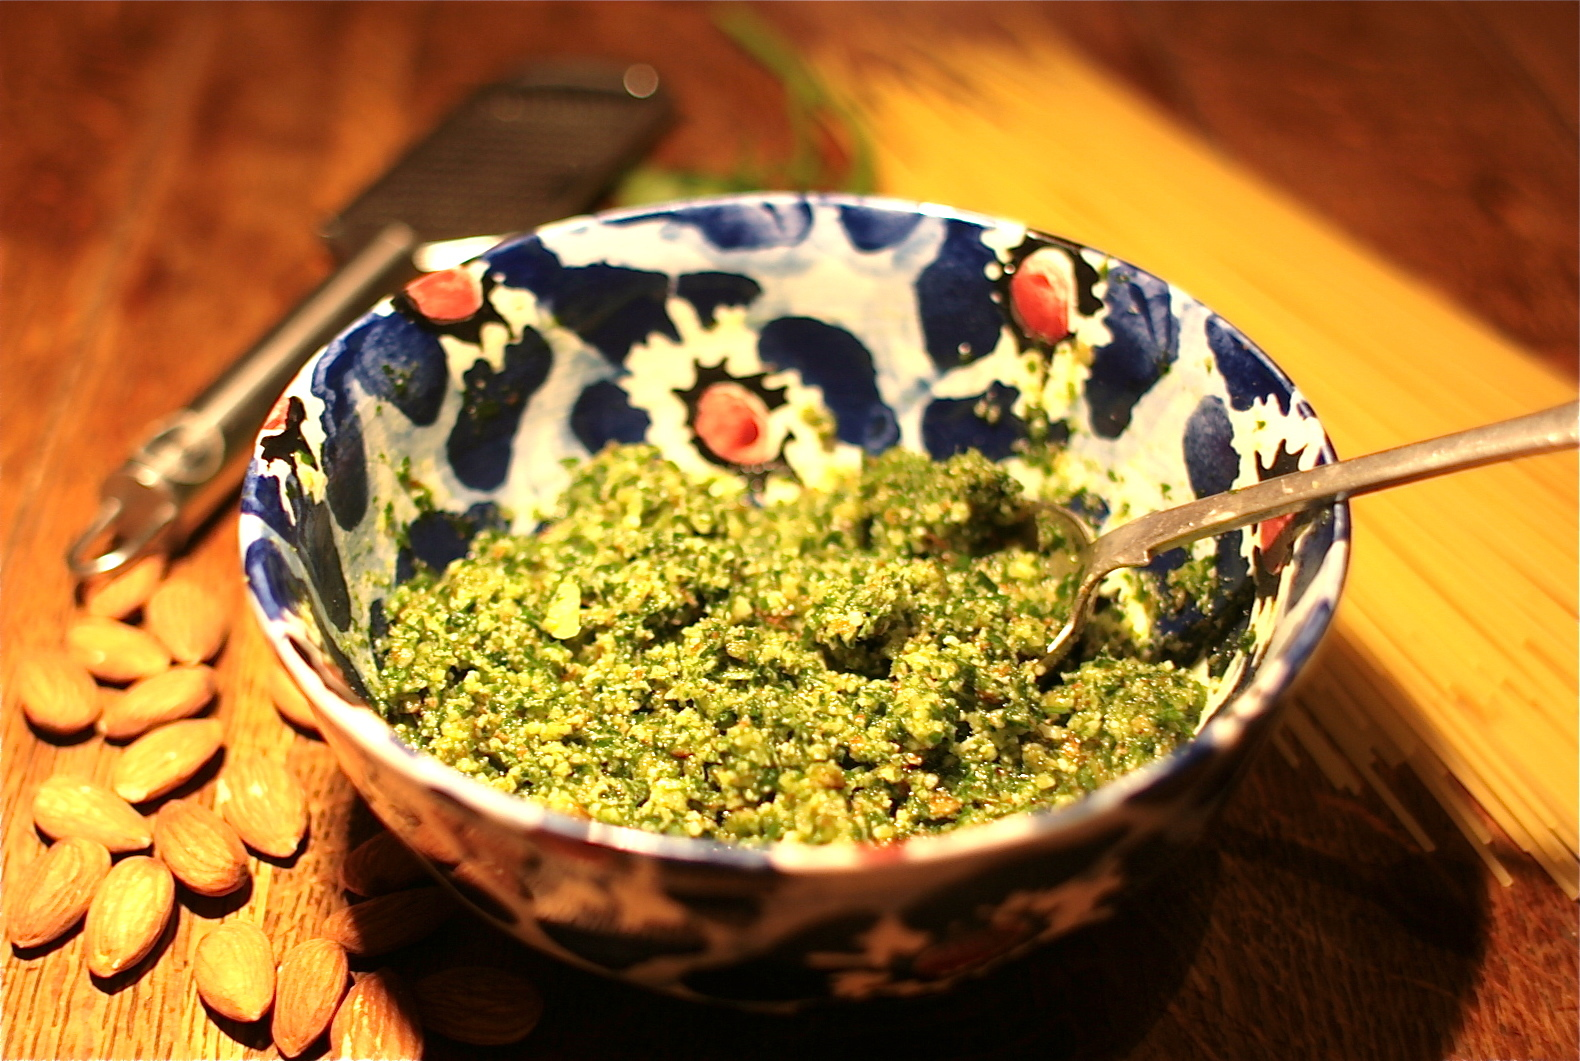 Happy New Year, and a Parsley Pesto to you!